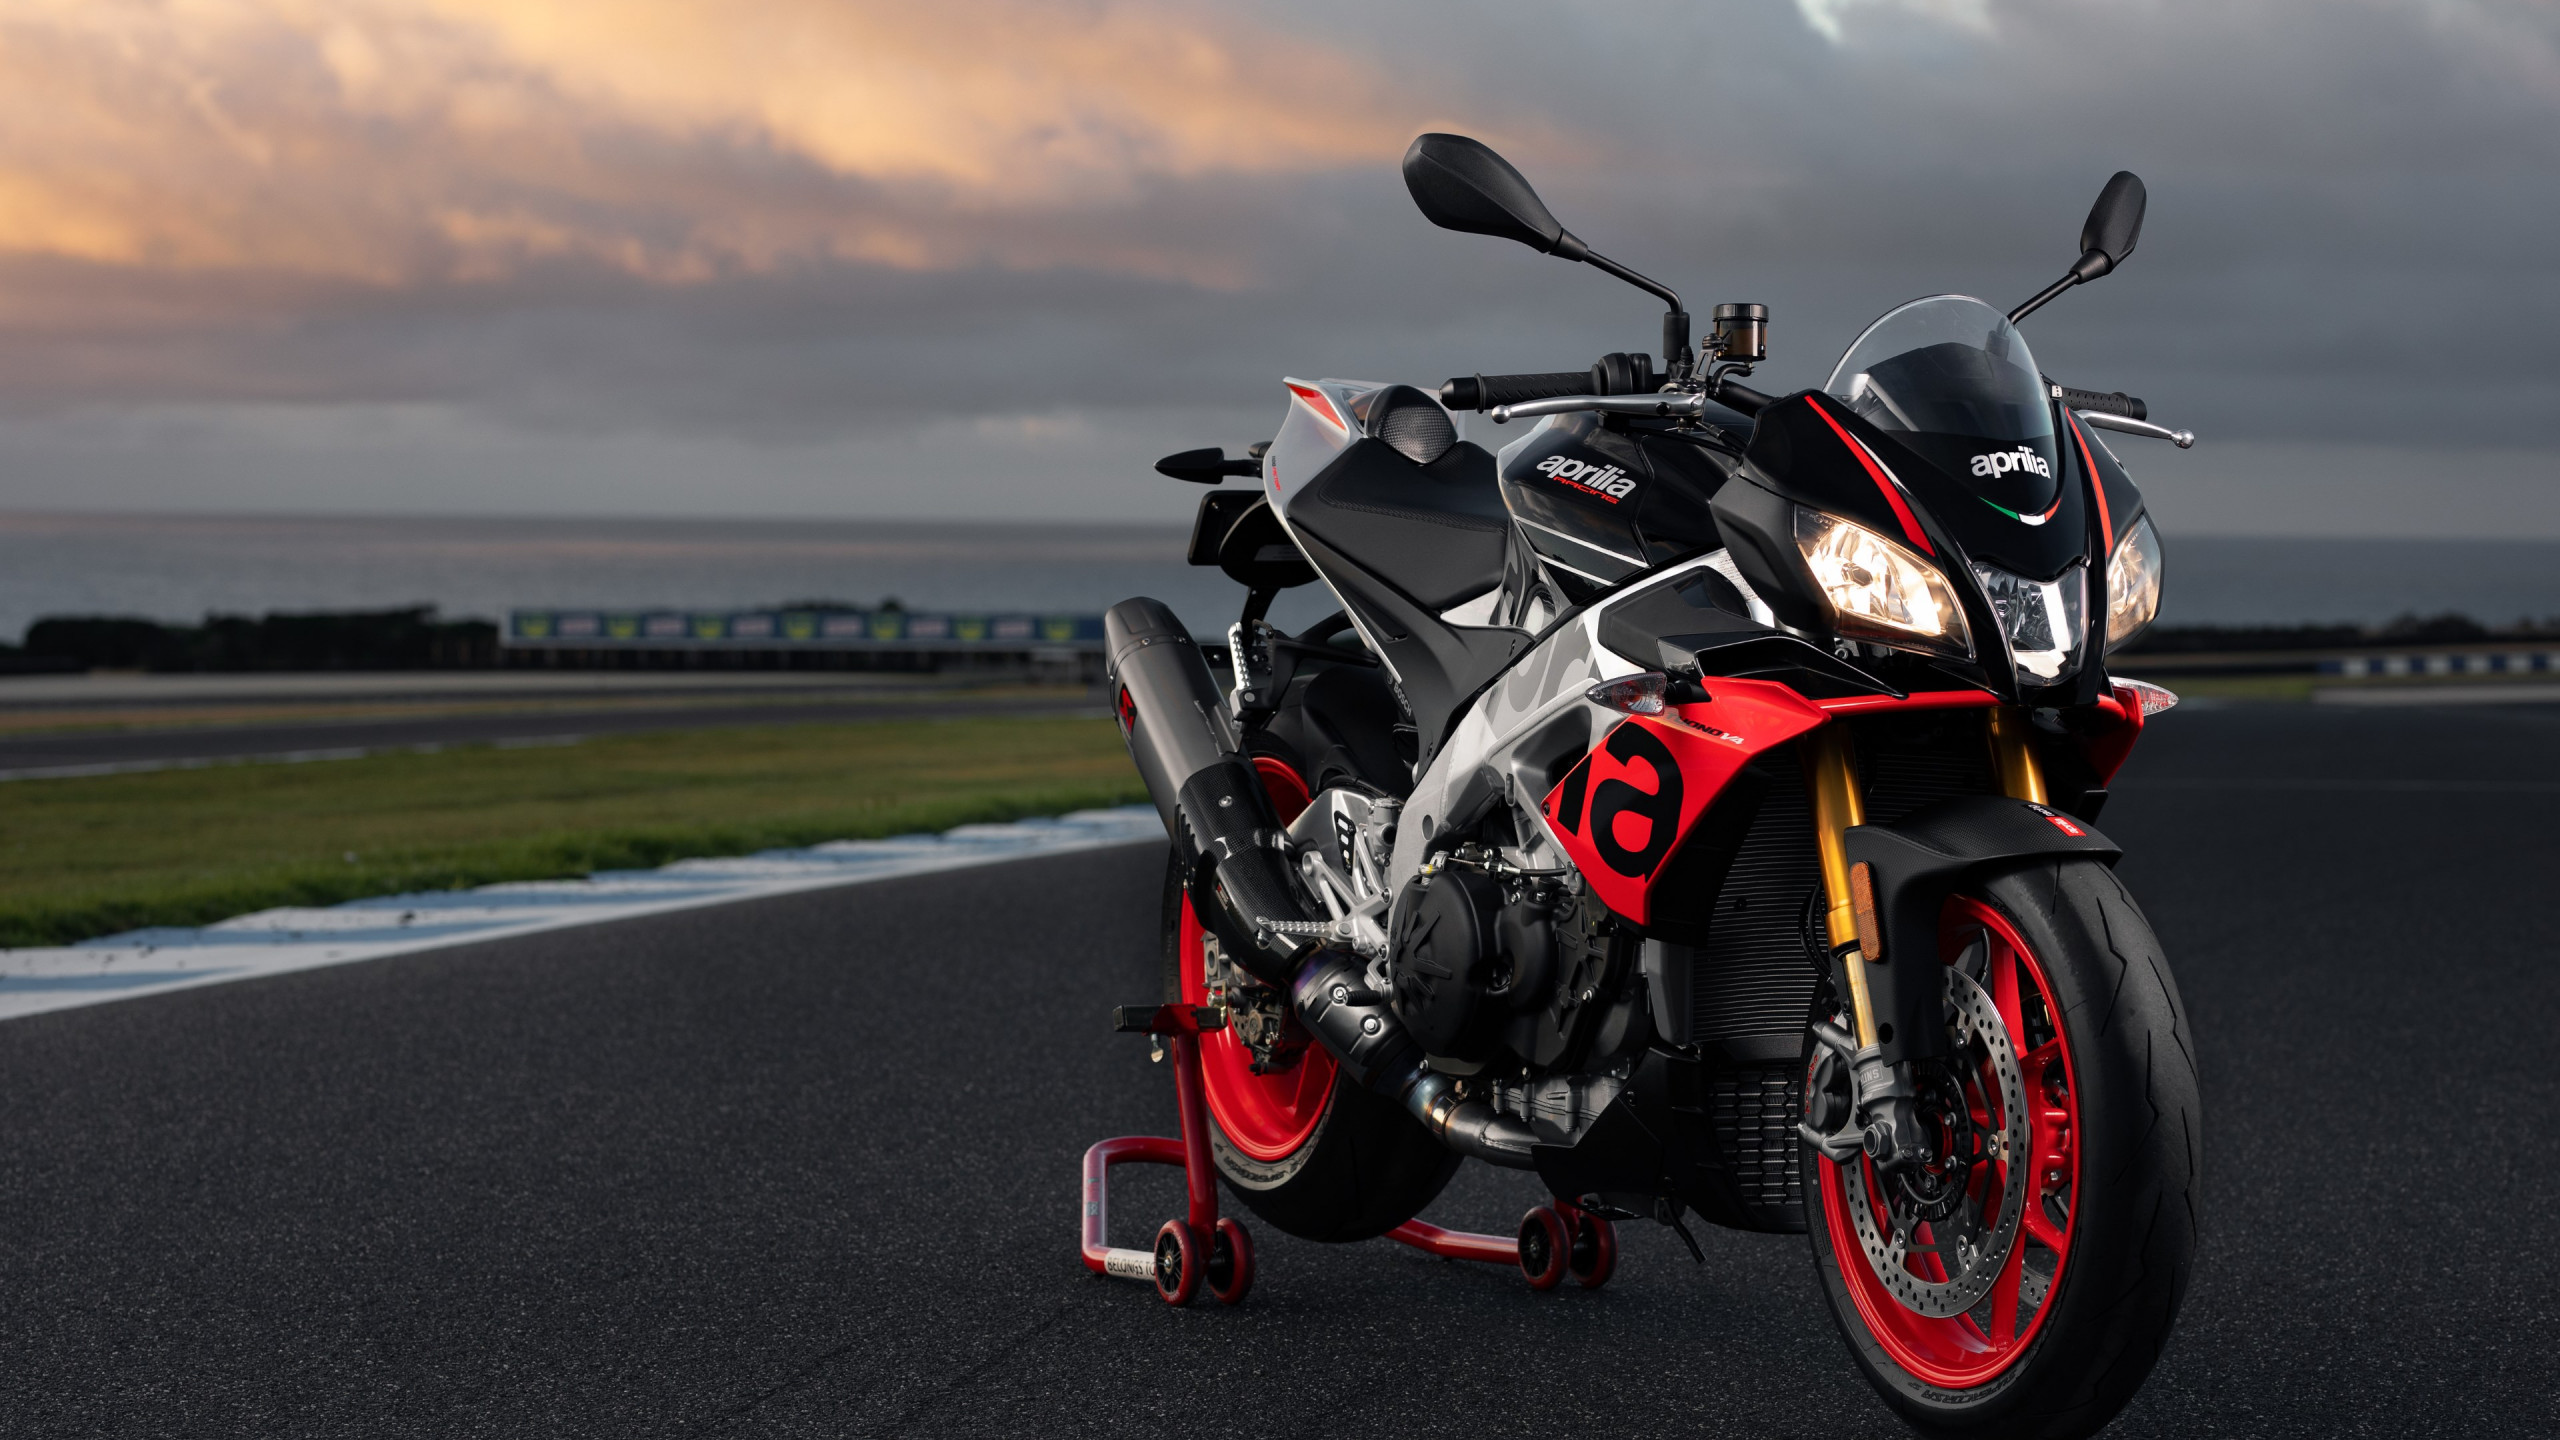 Aprilia Tuono V4 1100 Factory wallpaper 2560x1440